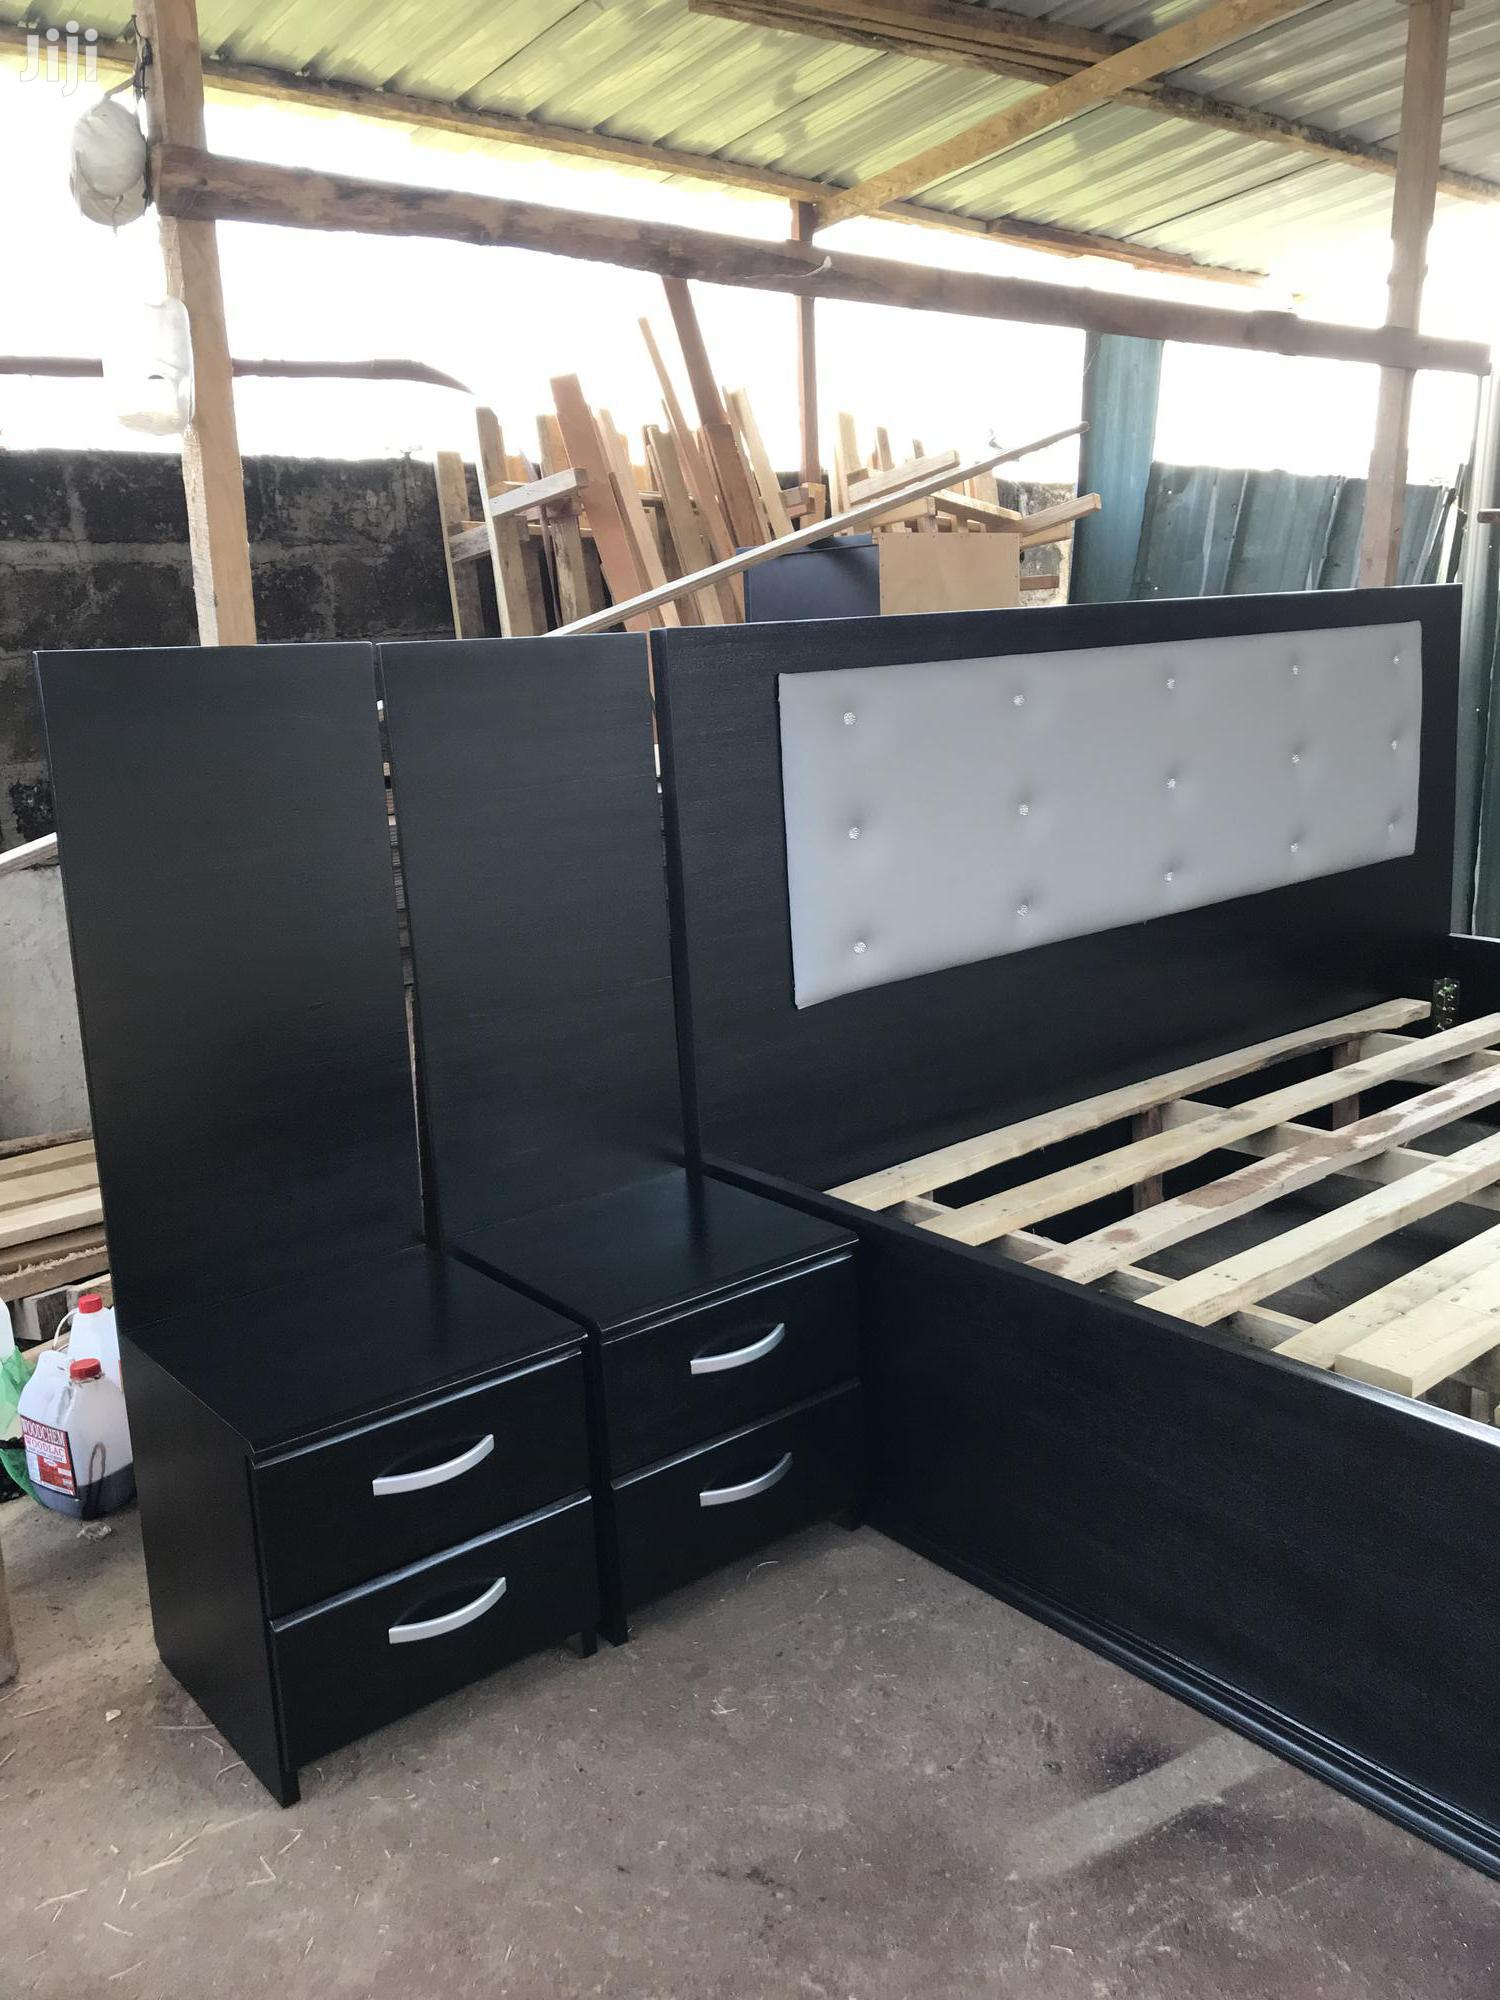 Spray King Size Beds With Tow Side Drawers 85 by 75 Inches | Furniture for sale in Abelemkpe, Greater Accra, Ghana